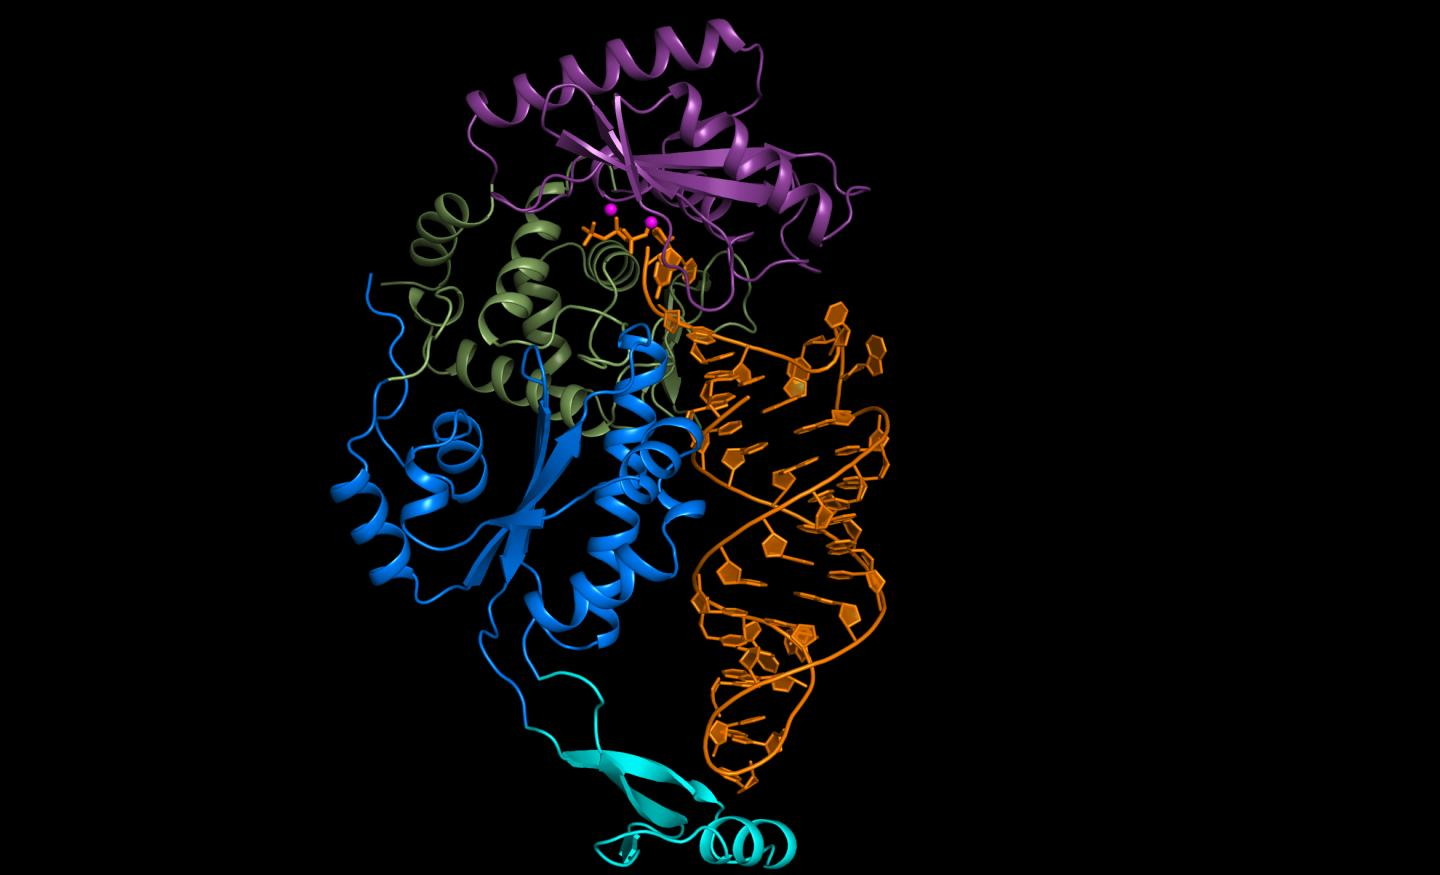 Researchers at Cold Spring Harbor Laboratory have uncovered a remarkable, new proofreading mechanism. In general, enzymatic machines are responsible for weeding out and correcting errors. But a team of scientists has found that the CCA-adding enzyme (shown here in blue, green, and pink) doesn't edit at all. Instead, the RNA (in orange) has a built-in mechanism that allows it to proofread itself. Credit: L. Joshua-Tor, Cold Spring Harbor Laboratory